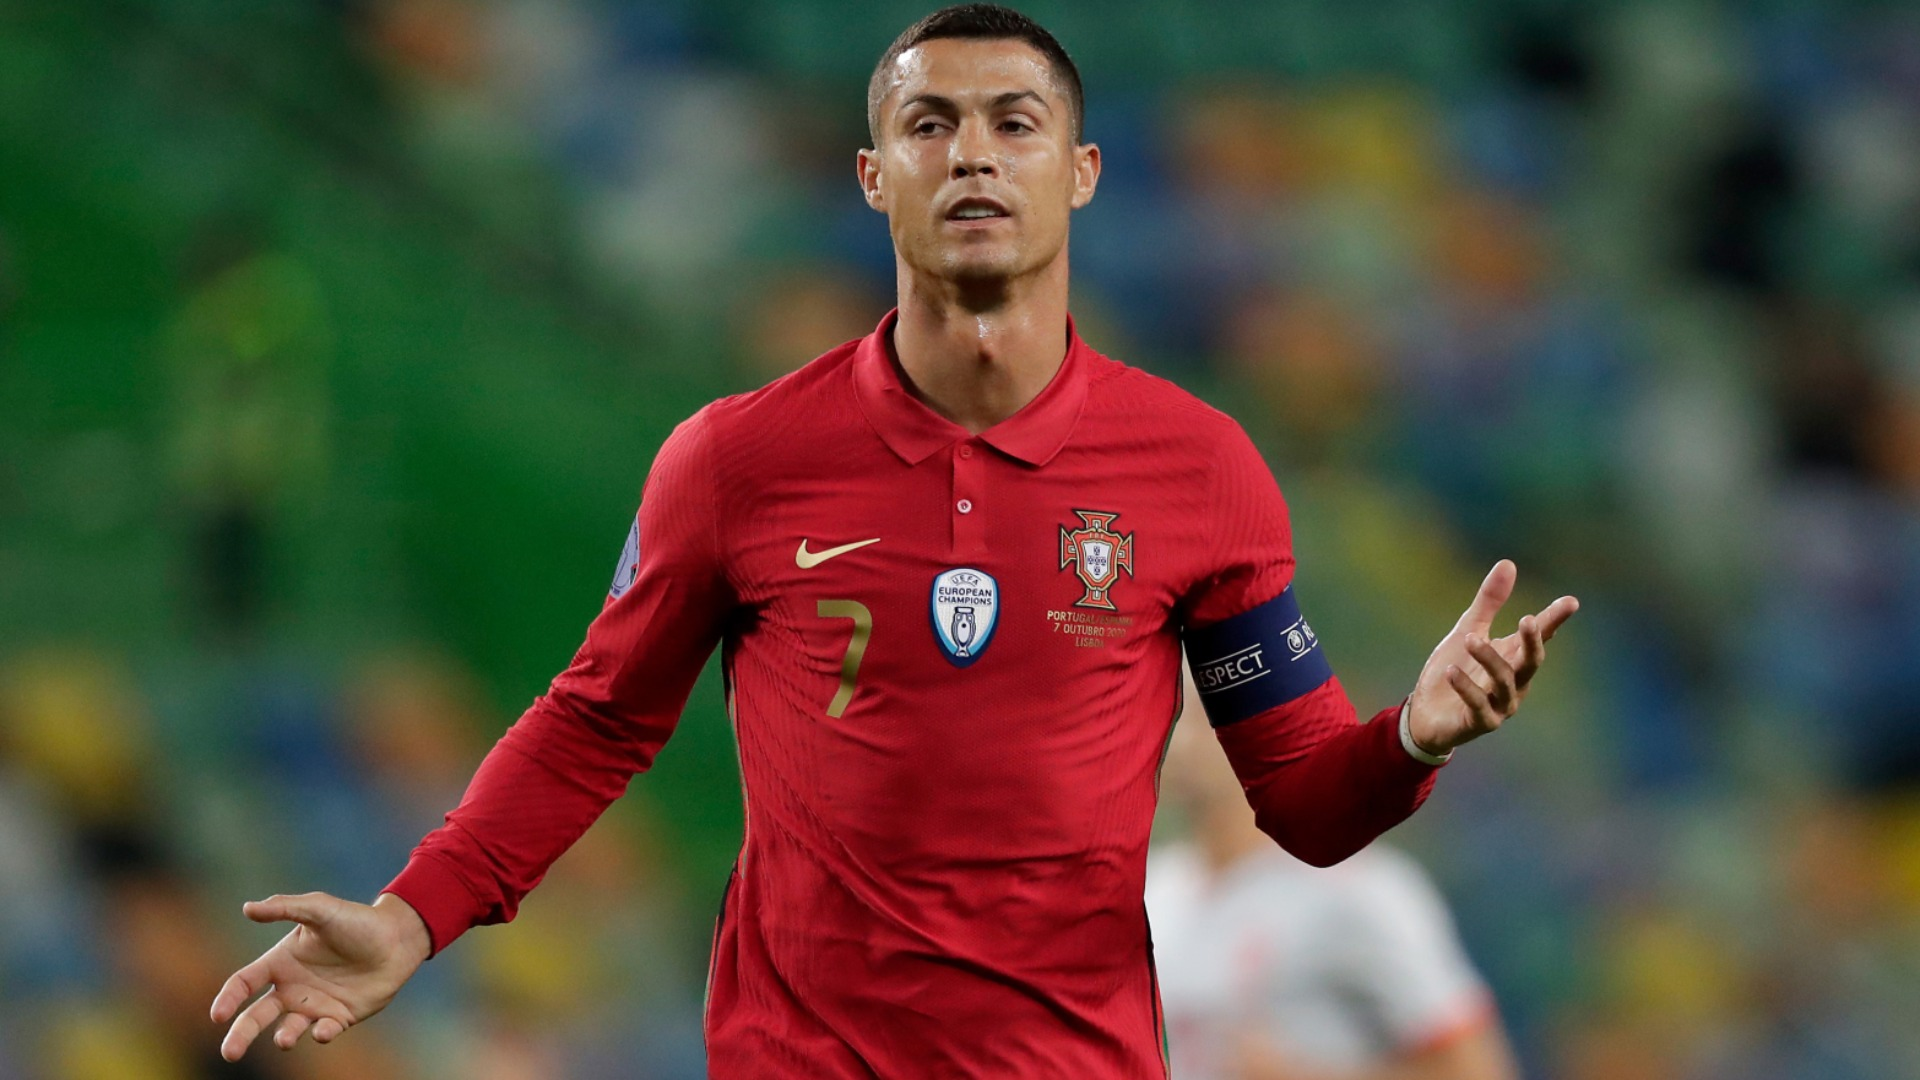 Portugal 0-0 Spain: Woodwork denies Ronaldo in lively friendly clash